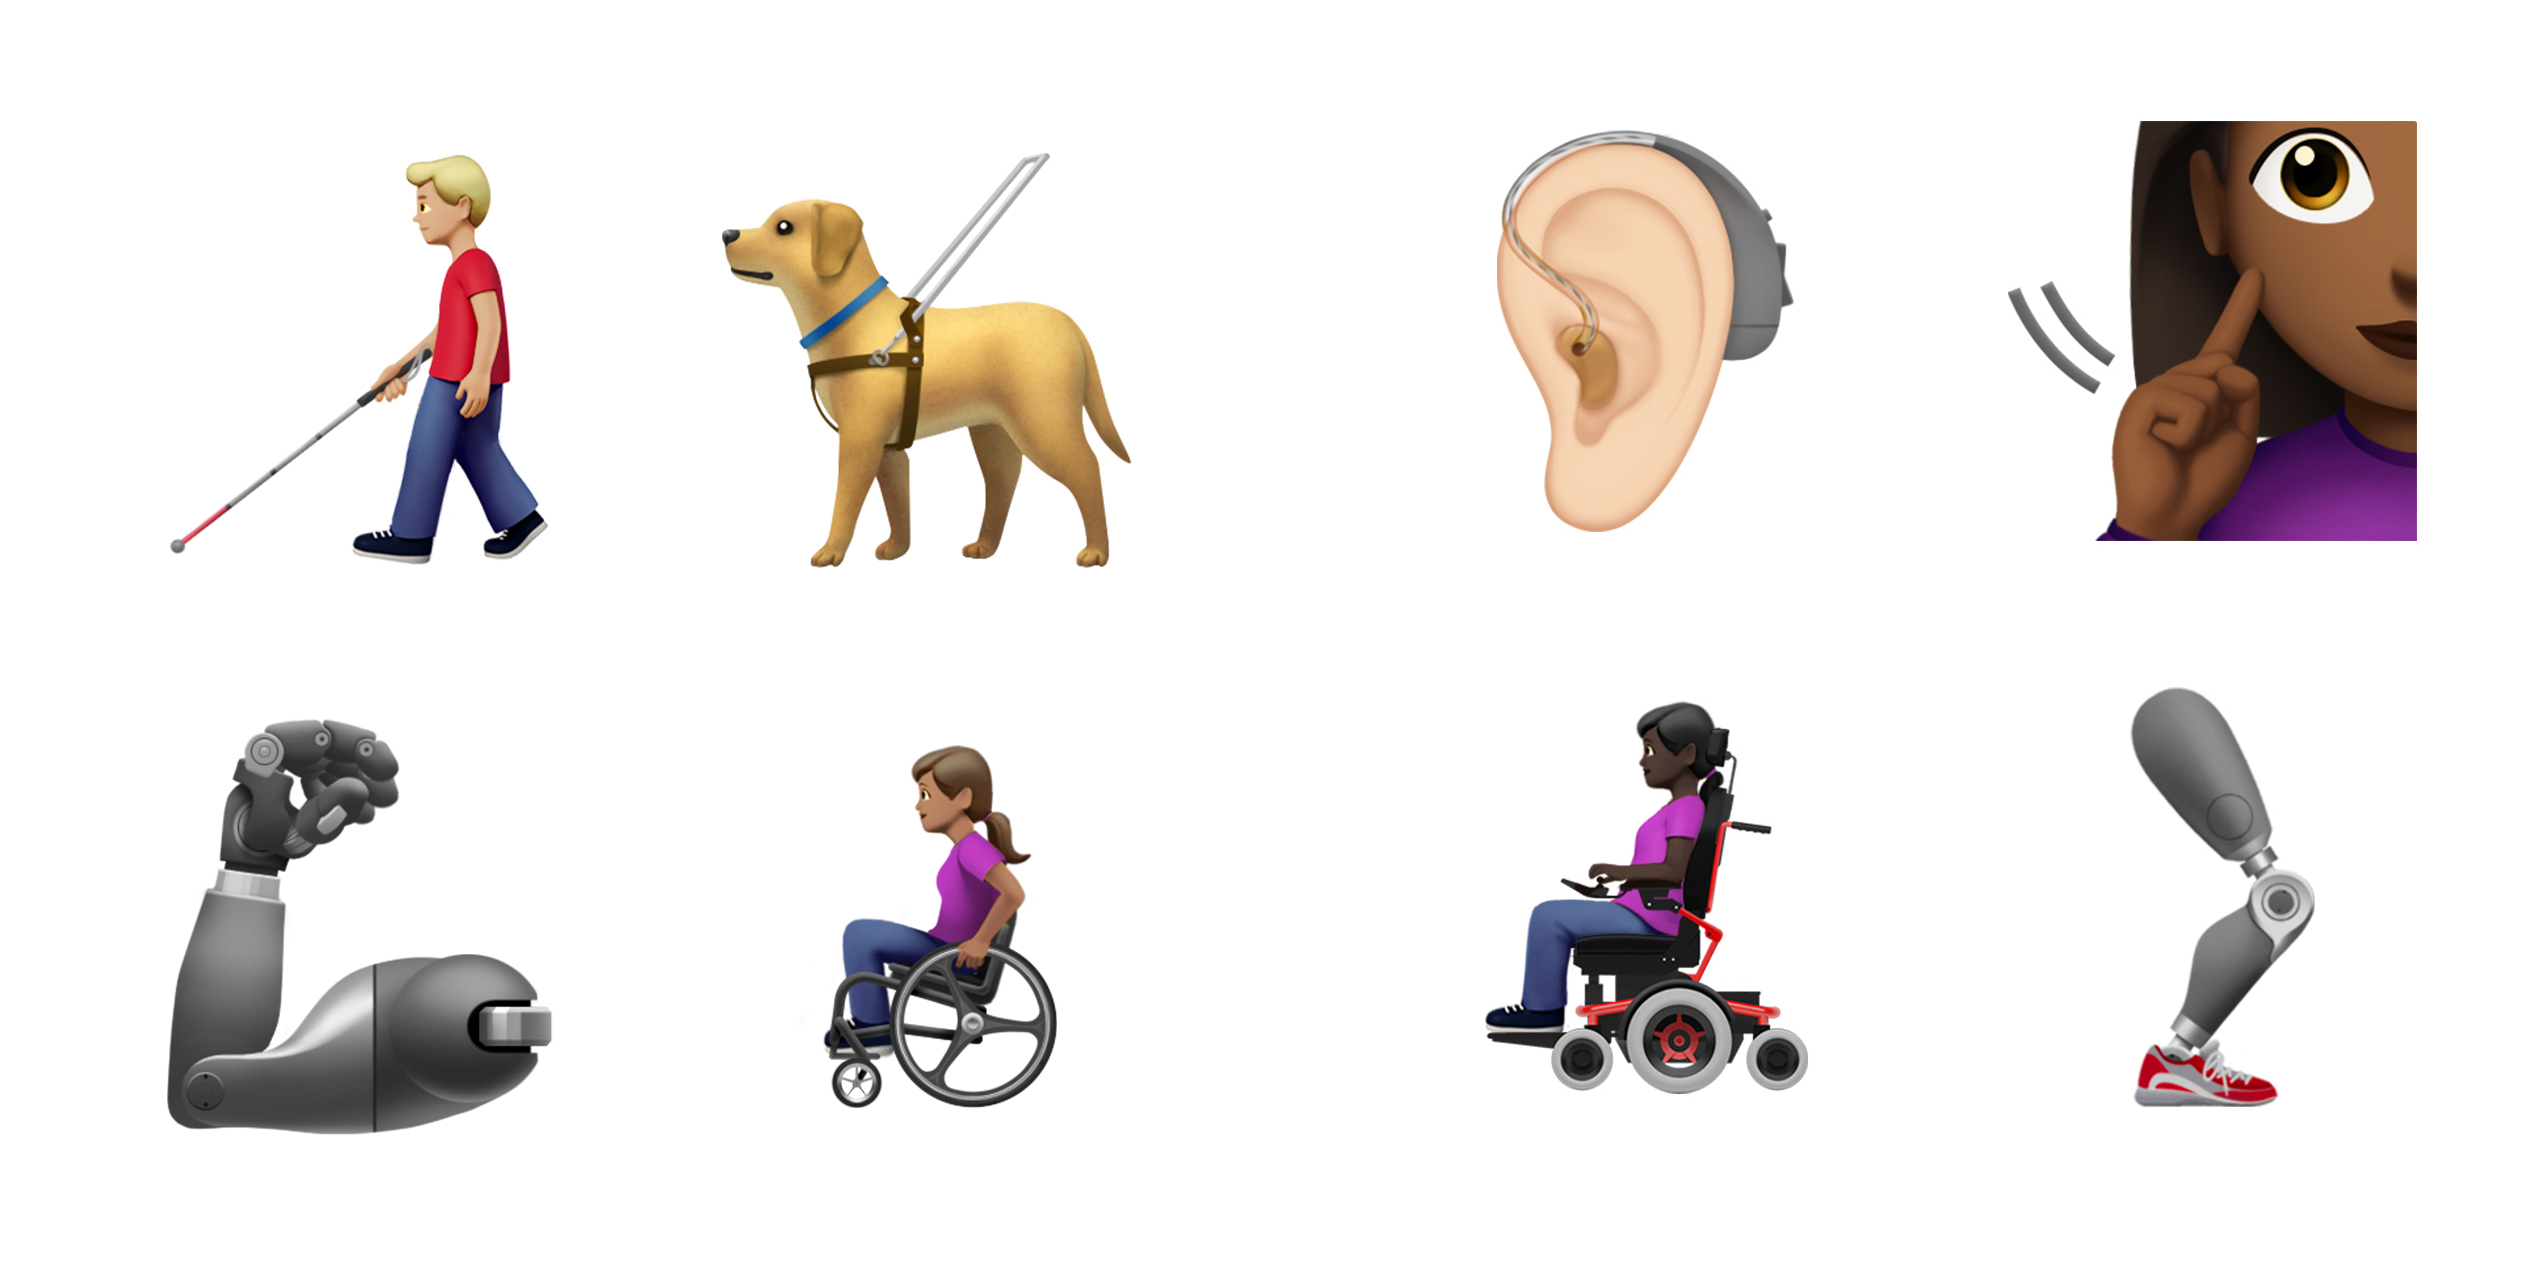 Apple Celebrates World Emoji Day With a Peek at The New Emoji Coming to iPhone This Fall